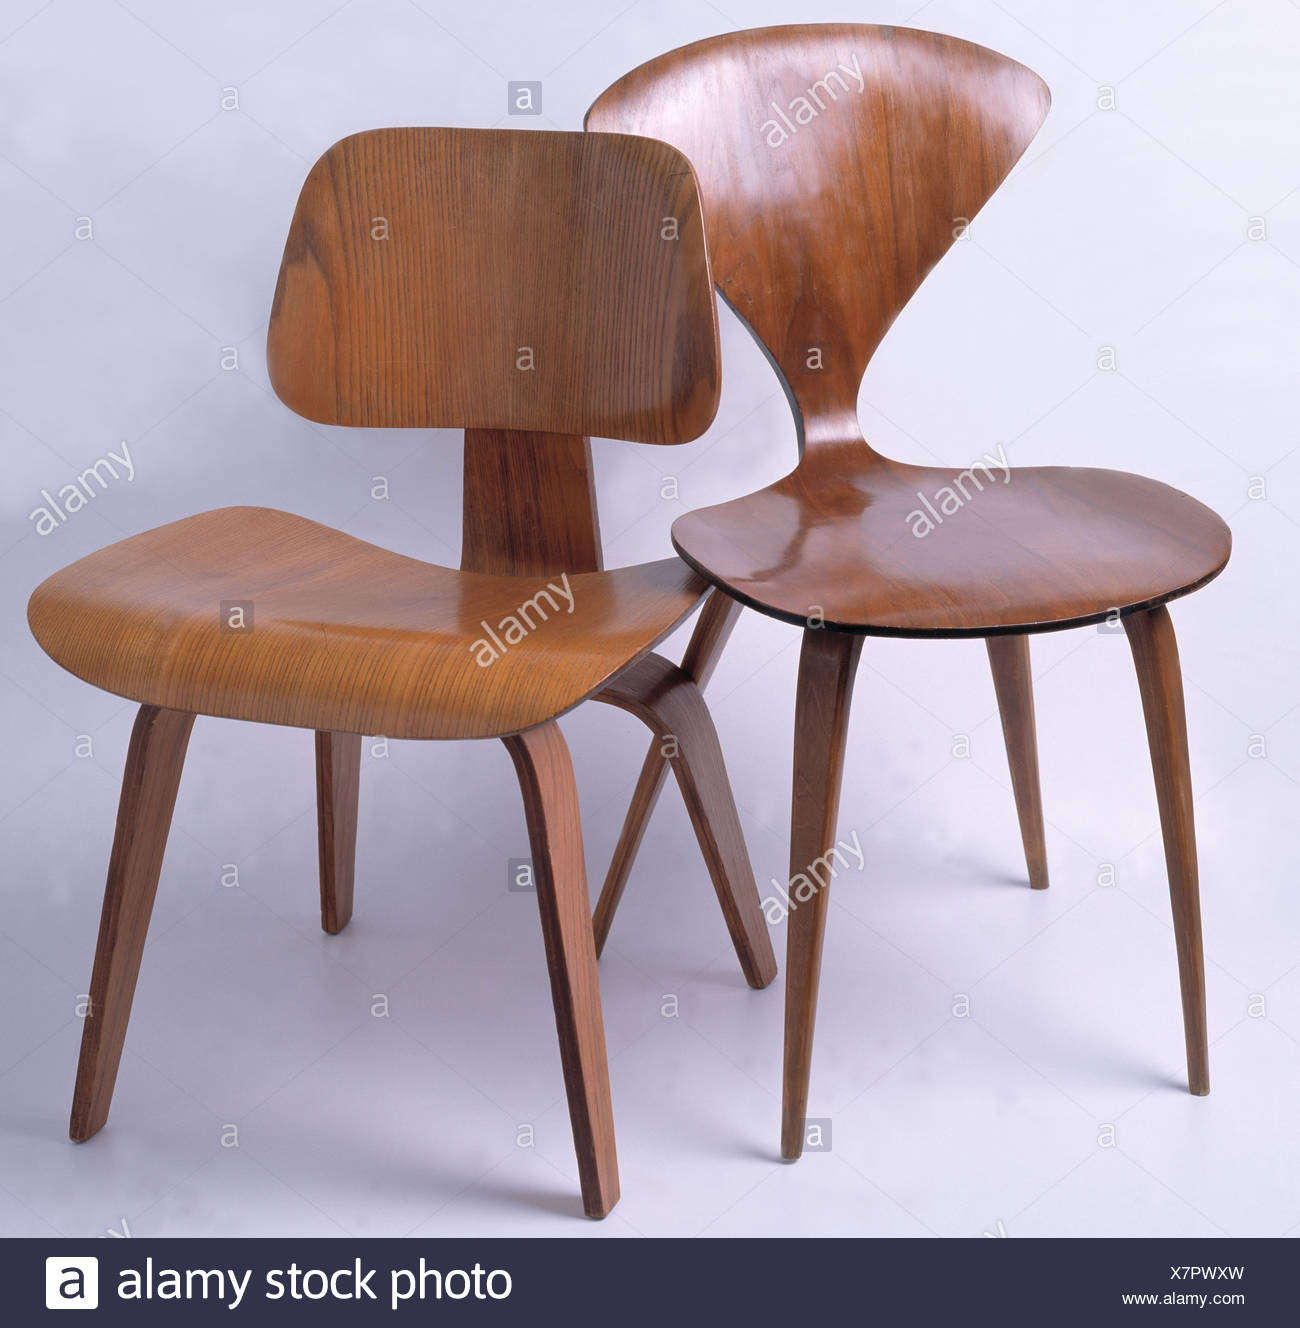 Close Up Of Norman Cherner Chair With Charles Eames DCW Molded Plywood Chair